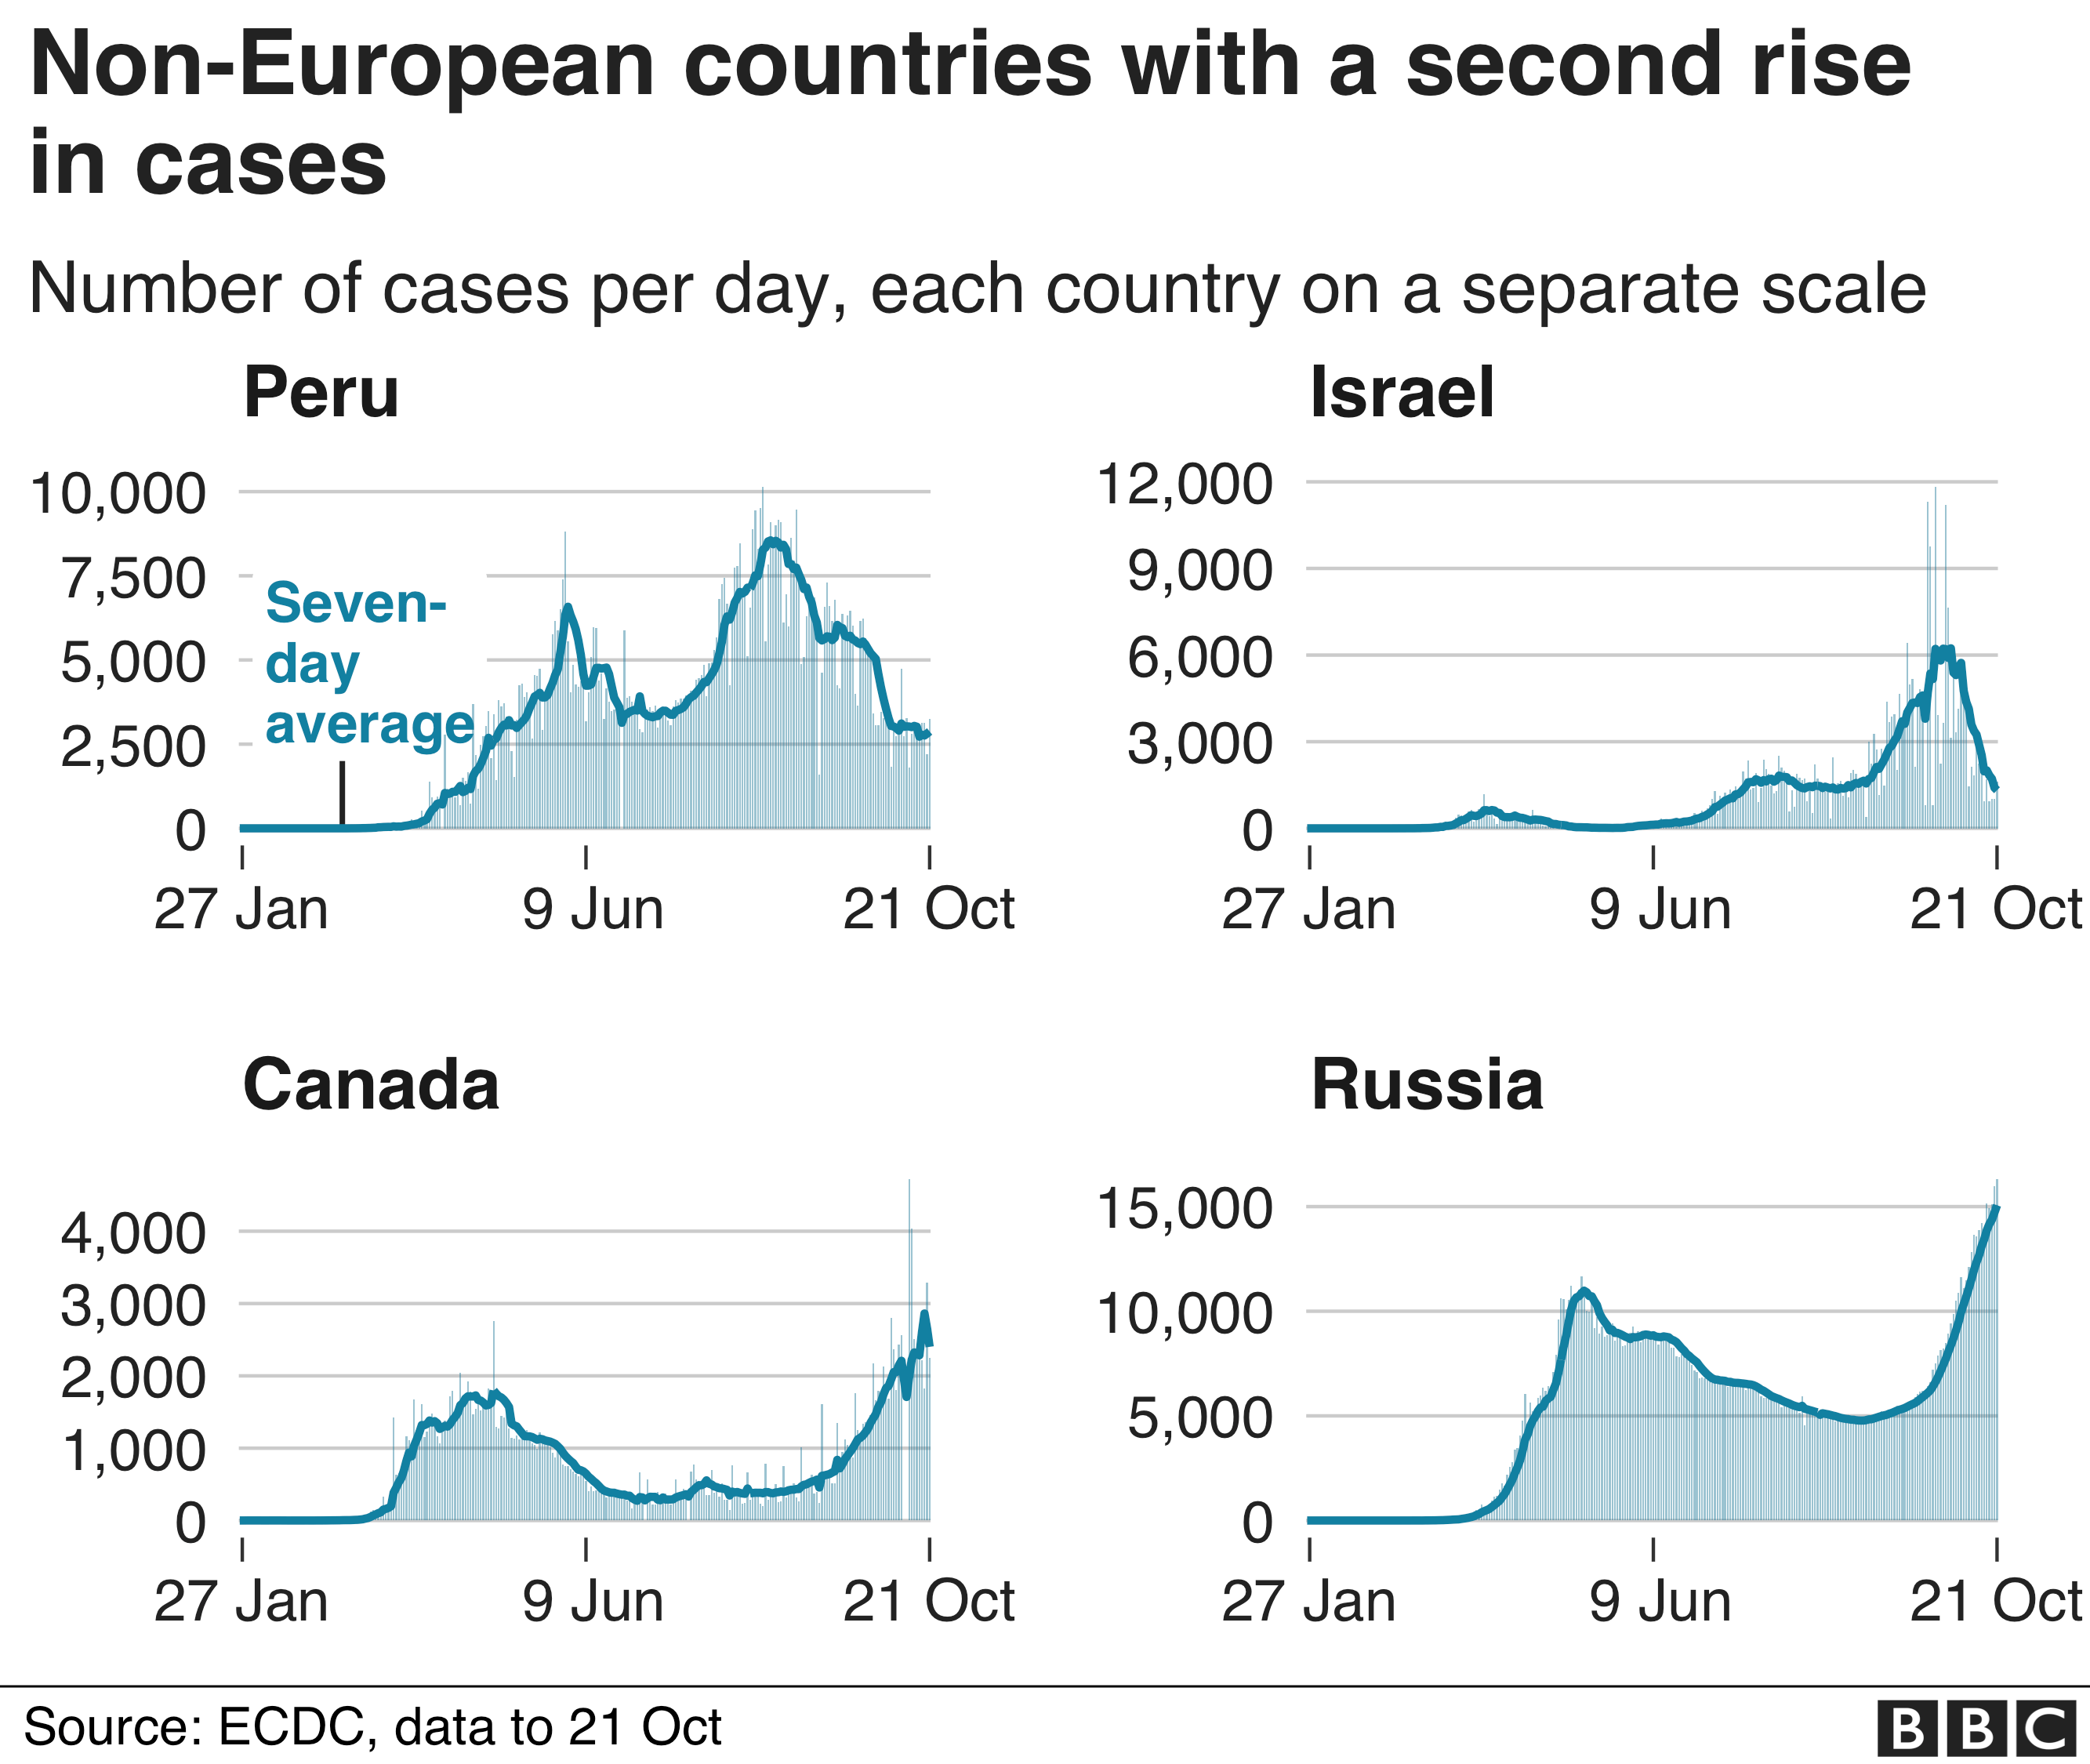 Chart shows non-European countries with a second rise, Peru, Israel, Canada and Russia